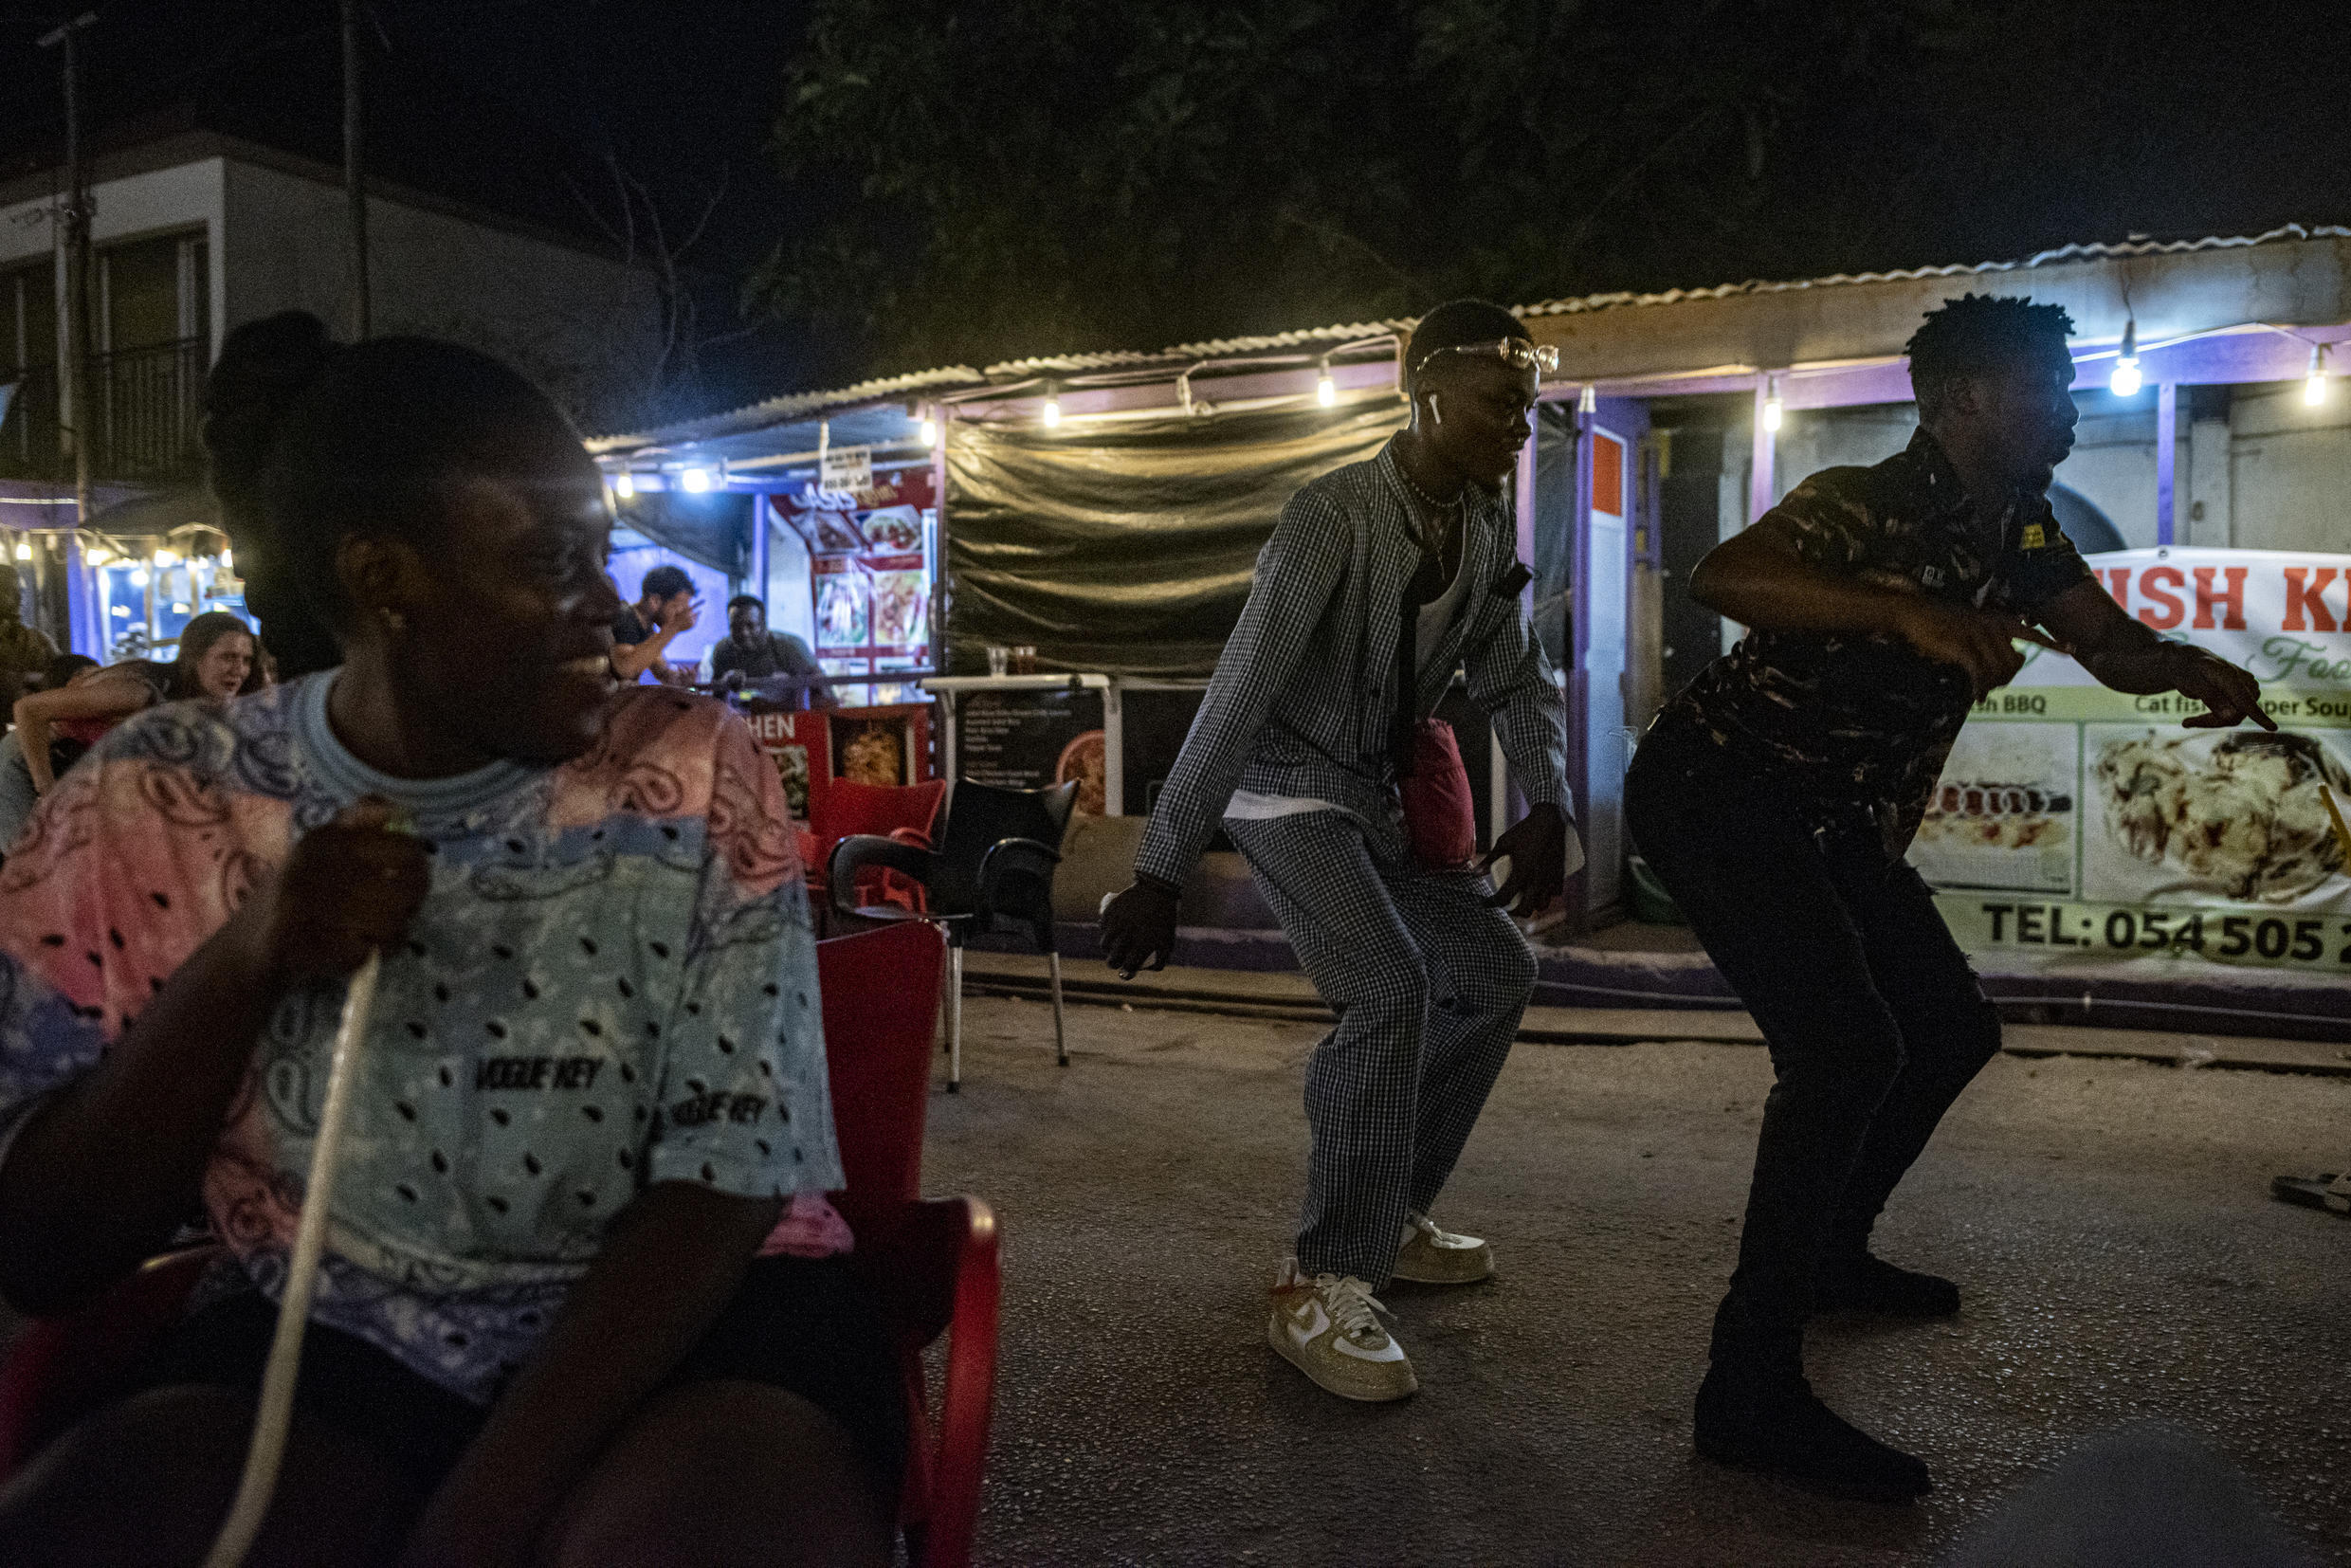 In a music scene long ruled by Nigeria, Afrobeats from Ghana are now finding favour not only in Accra's clubs but also in the international market